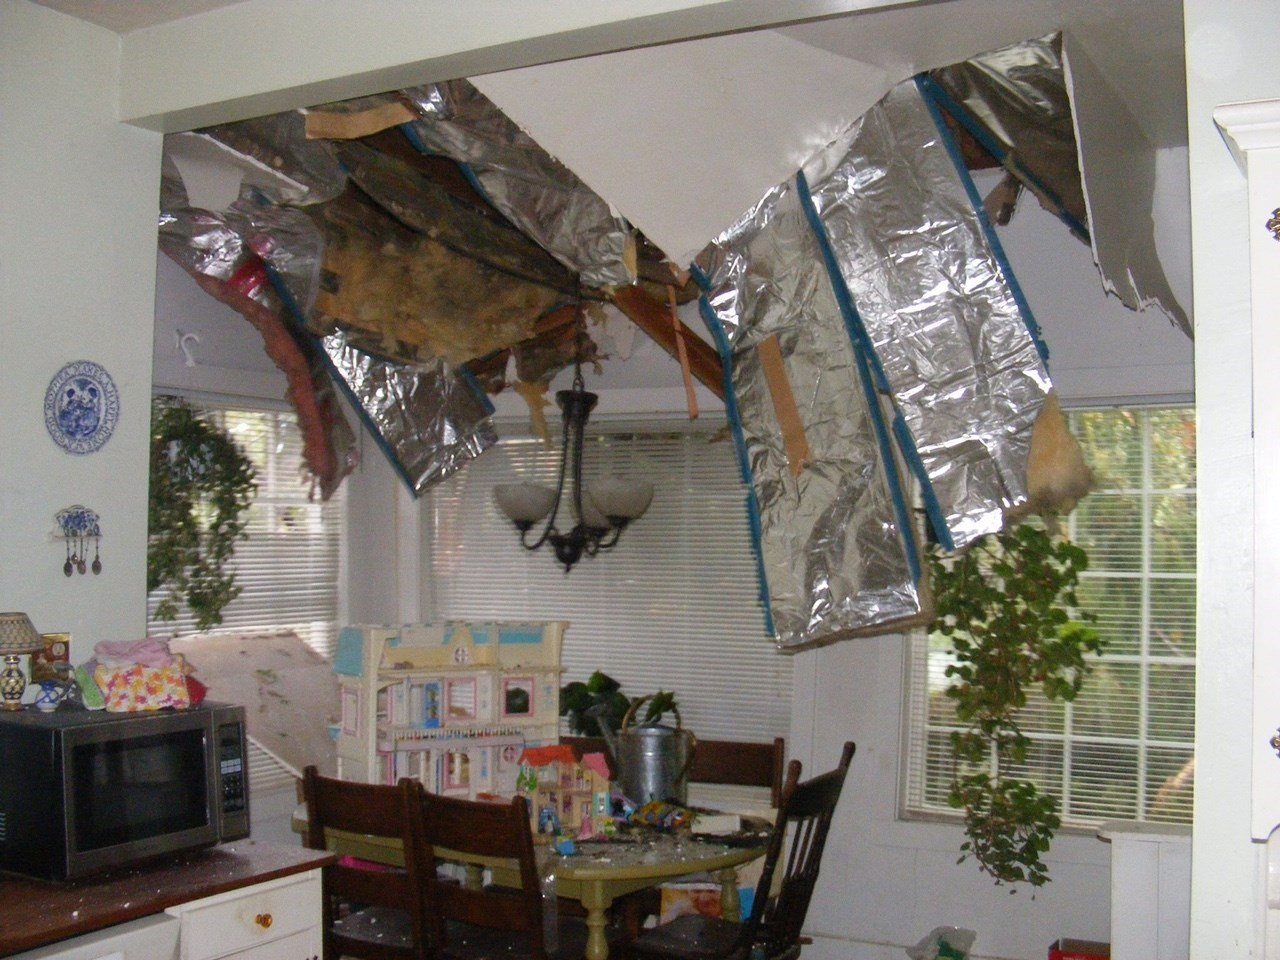 Some of the interior damage at the home. (KPTV)